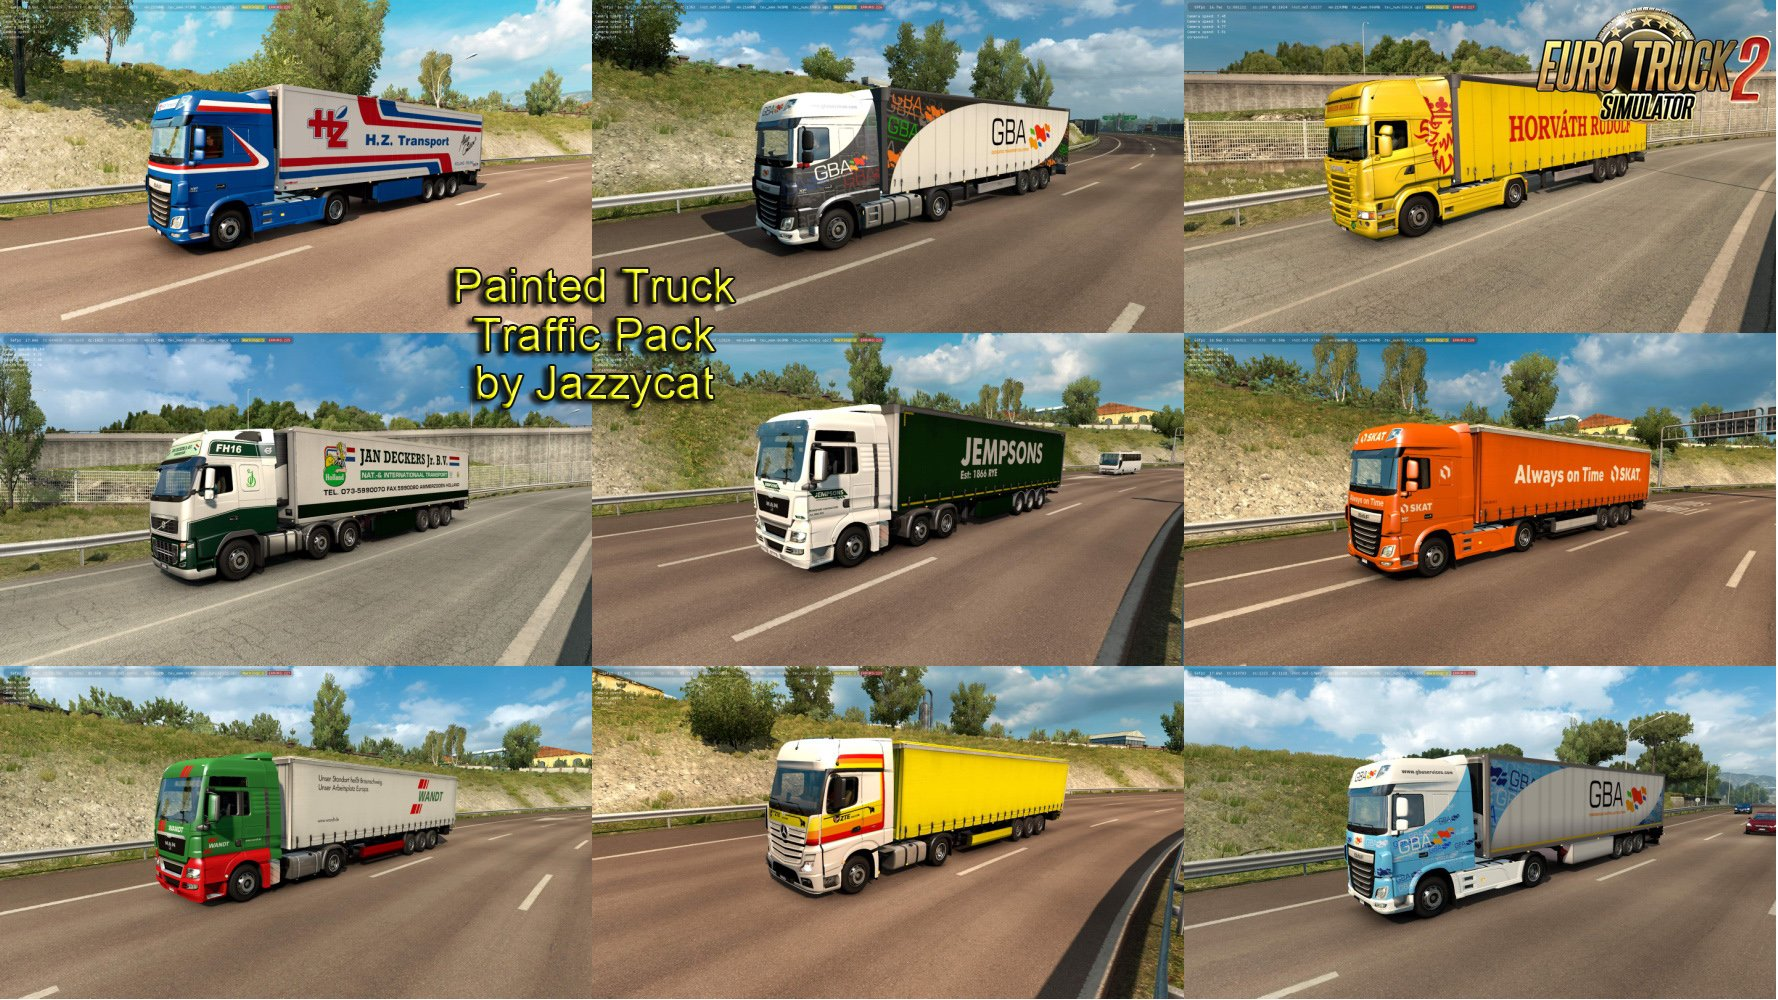 Painted Truck Traffic Pack v6.0 by Jazzycat